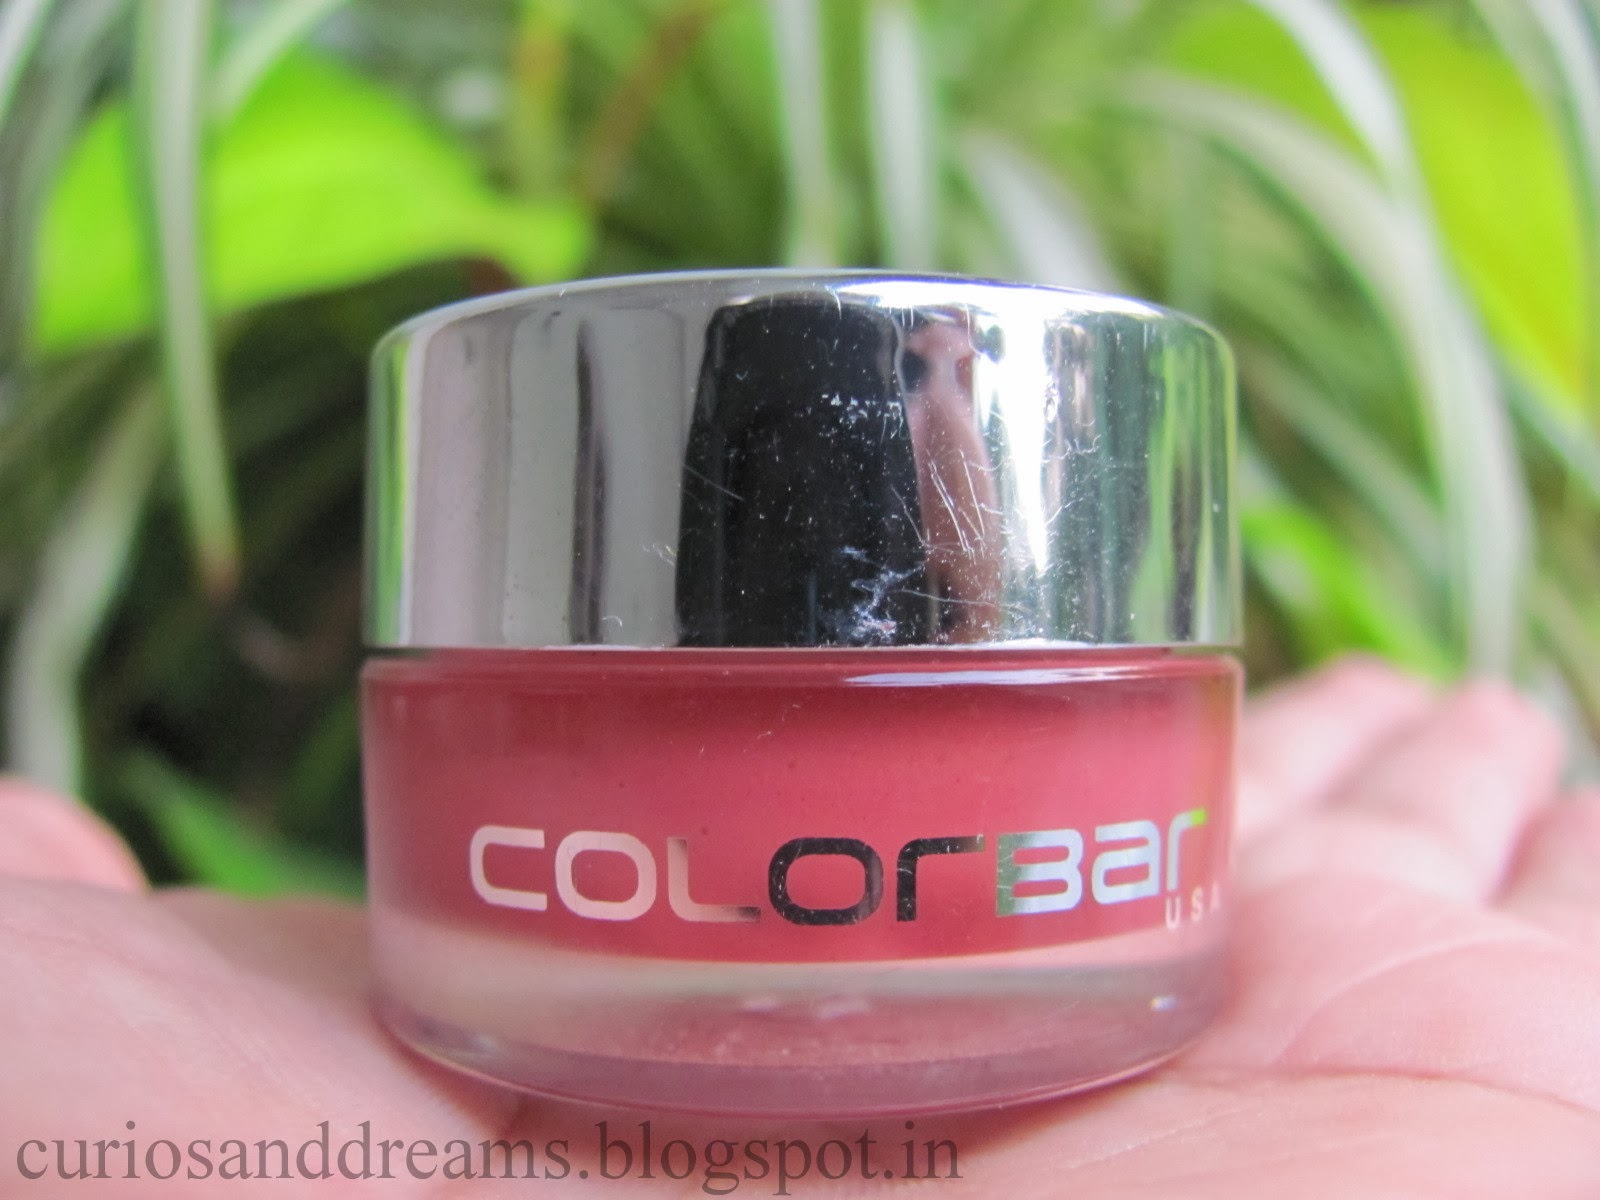 Colorbar Lip Pot in Warm Me Up review